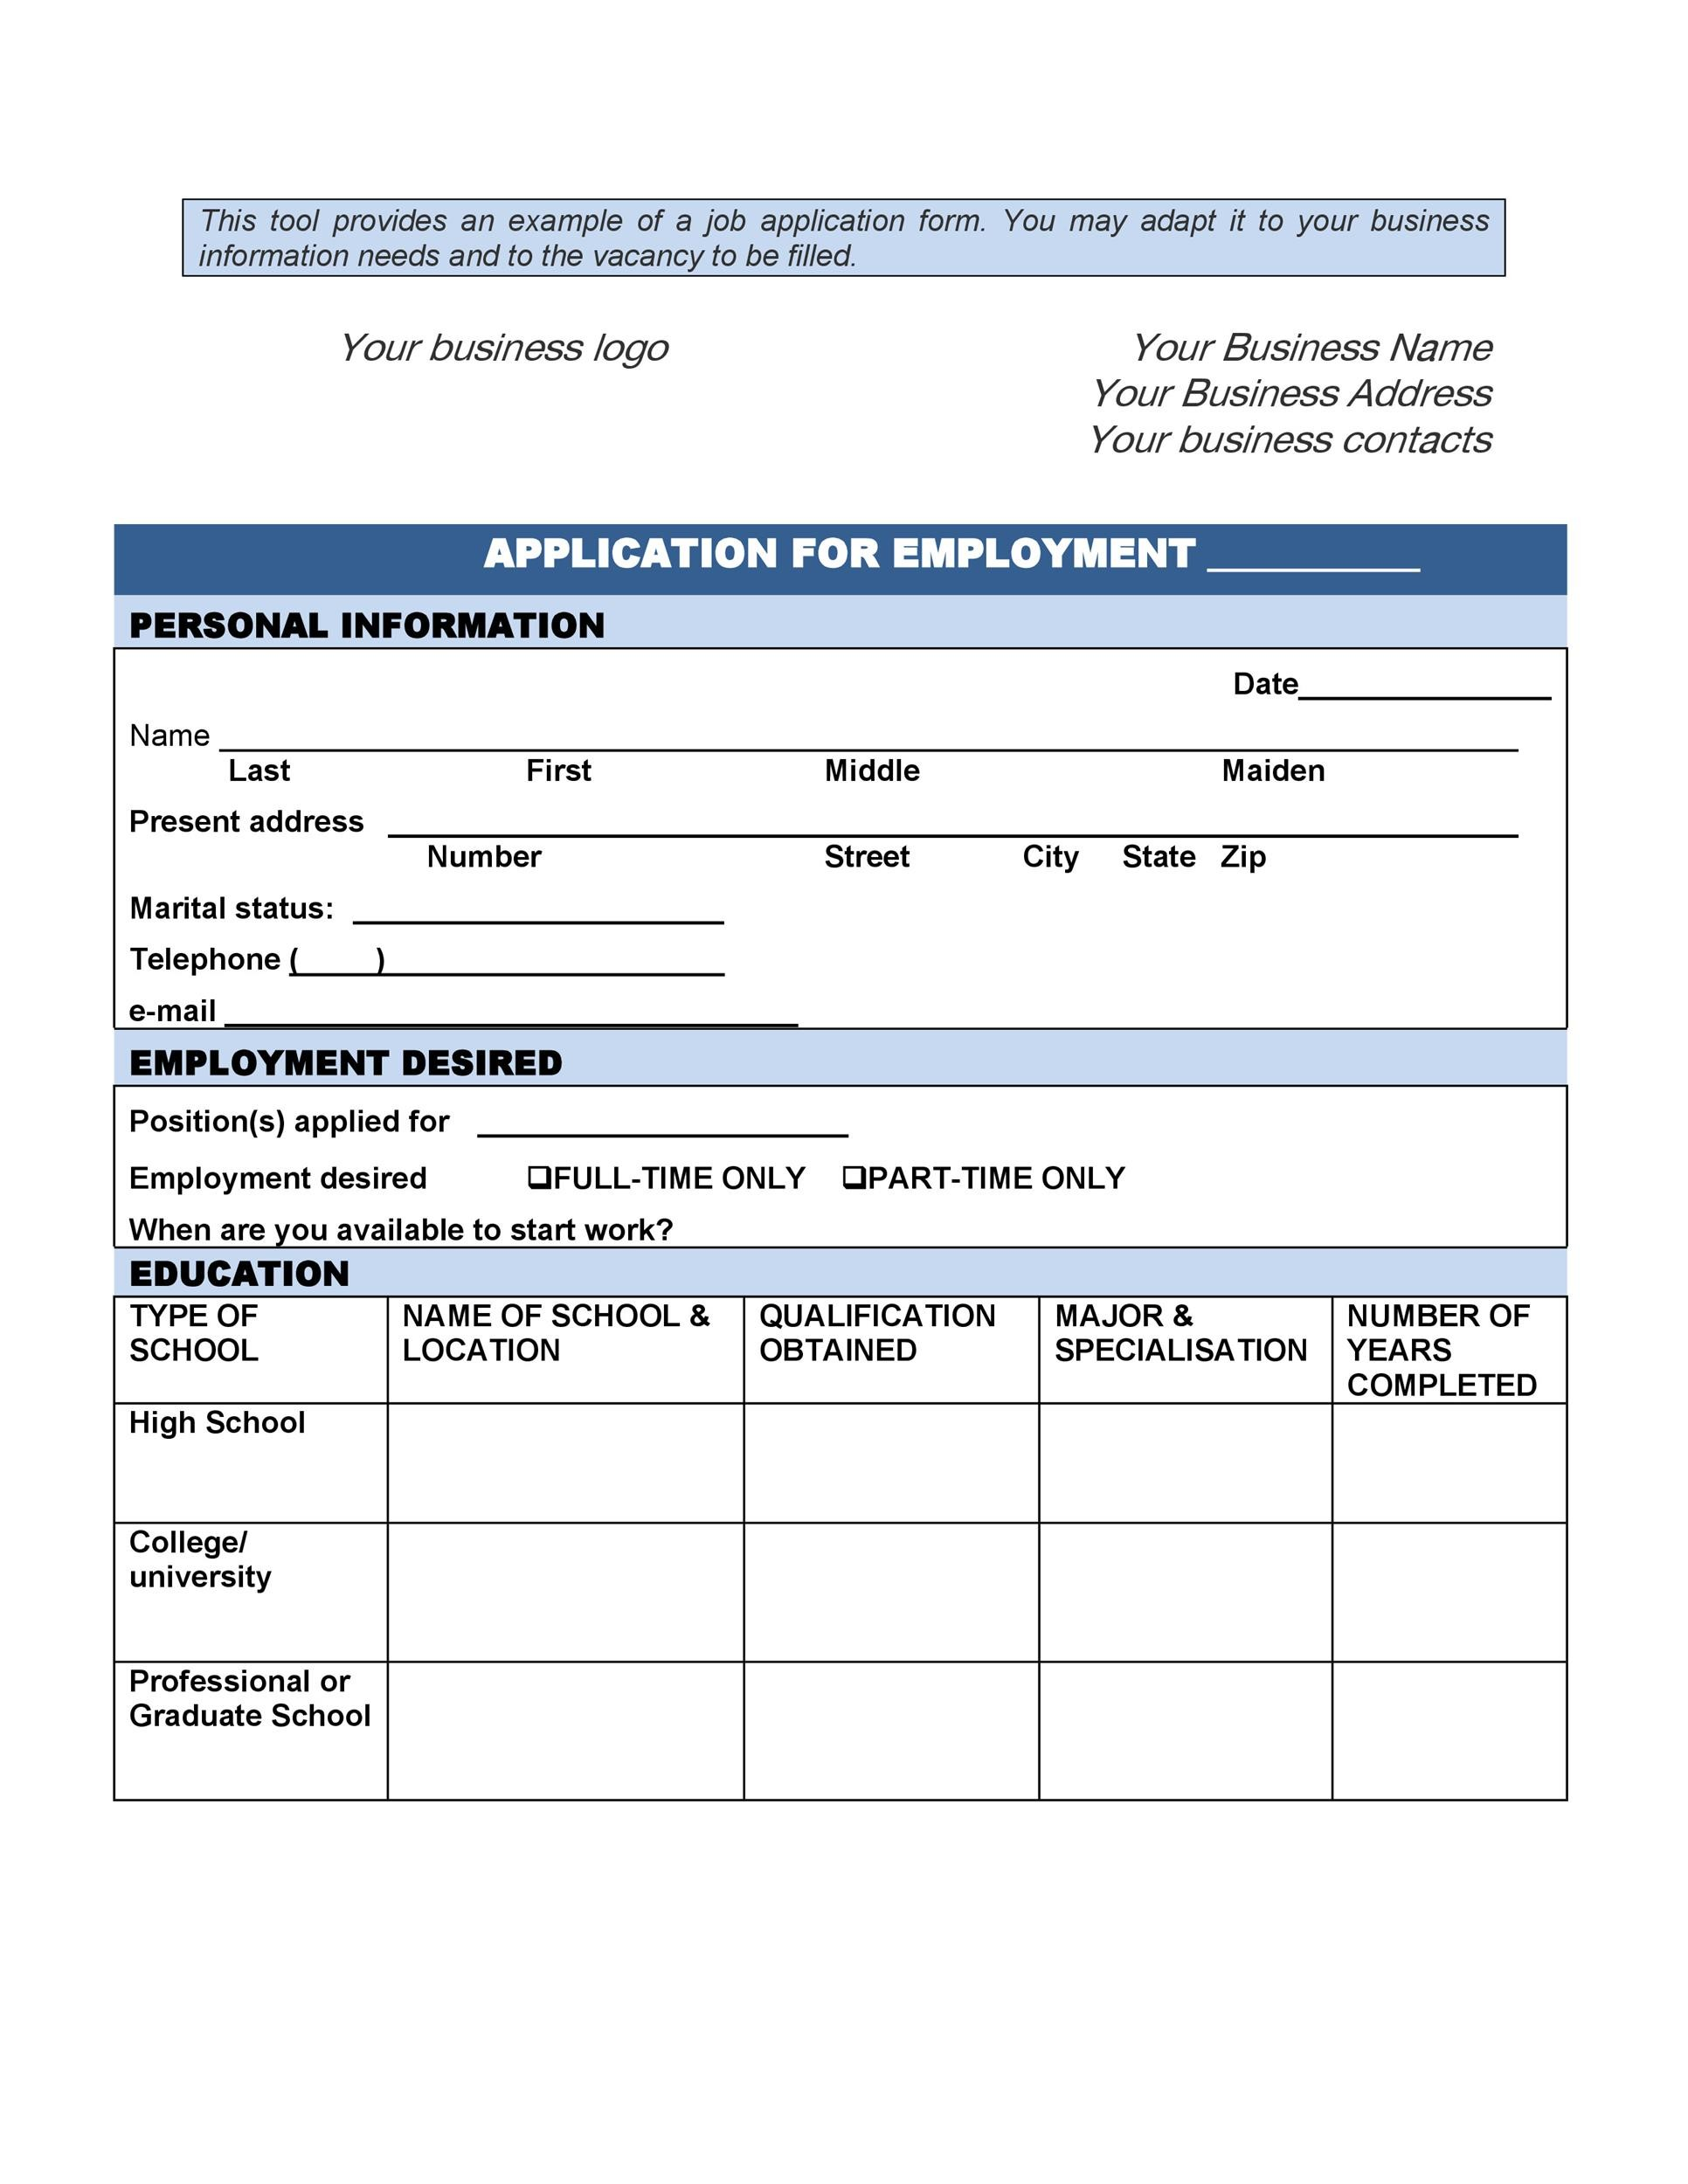 50 Free Employment Job Application Form Templates Printable ᐅ